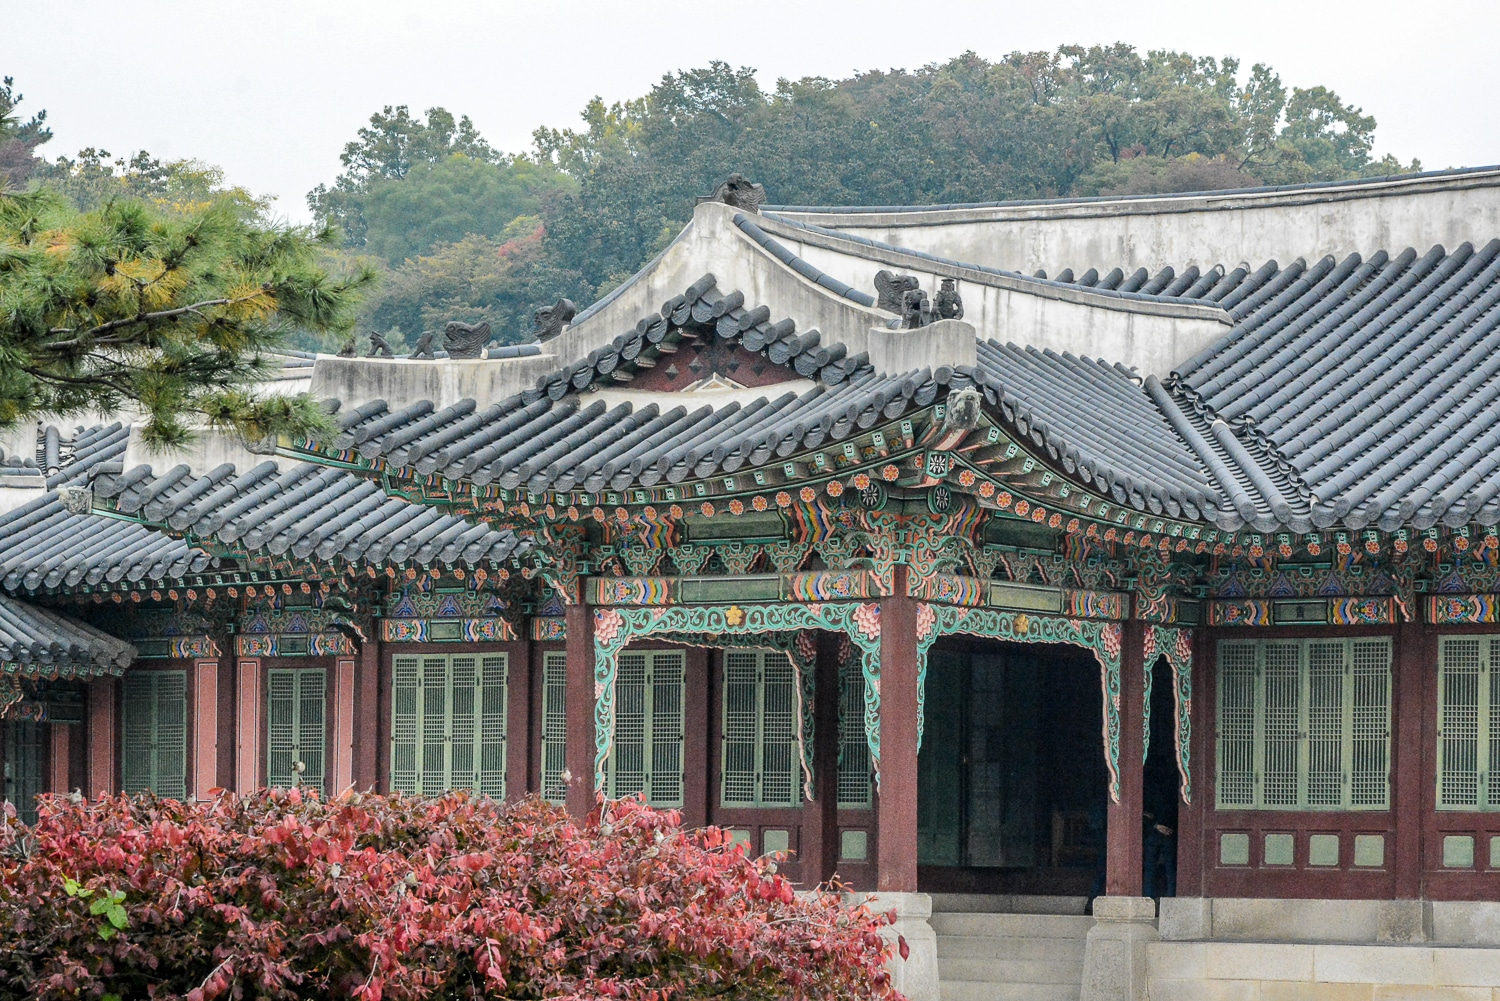 Seoul Tipps und Sightseeing in Seoul: 12 Highlights in Koreas Hauptstadt - Changdeokgung Palace